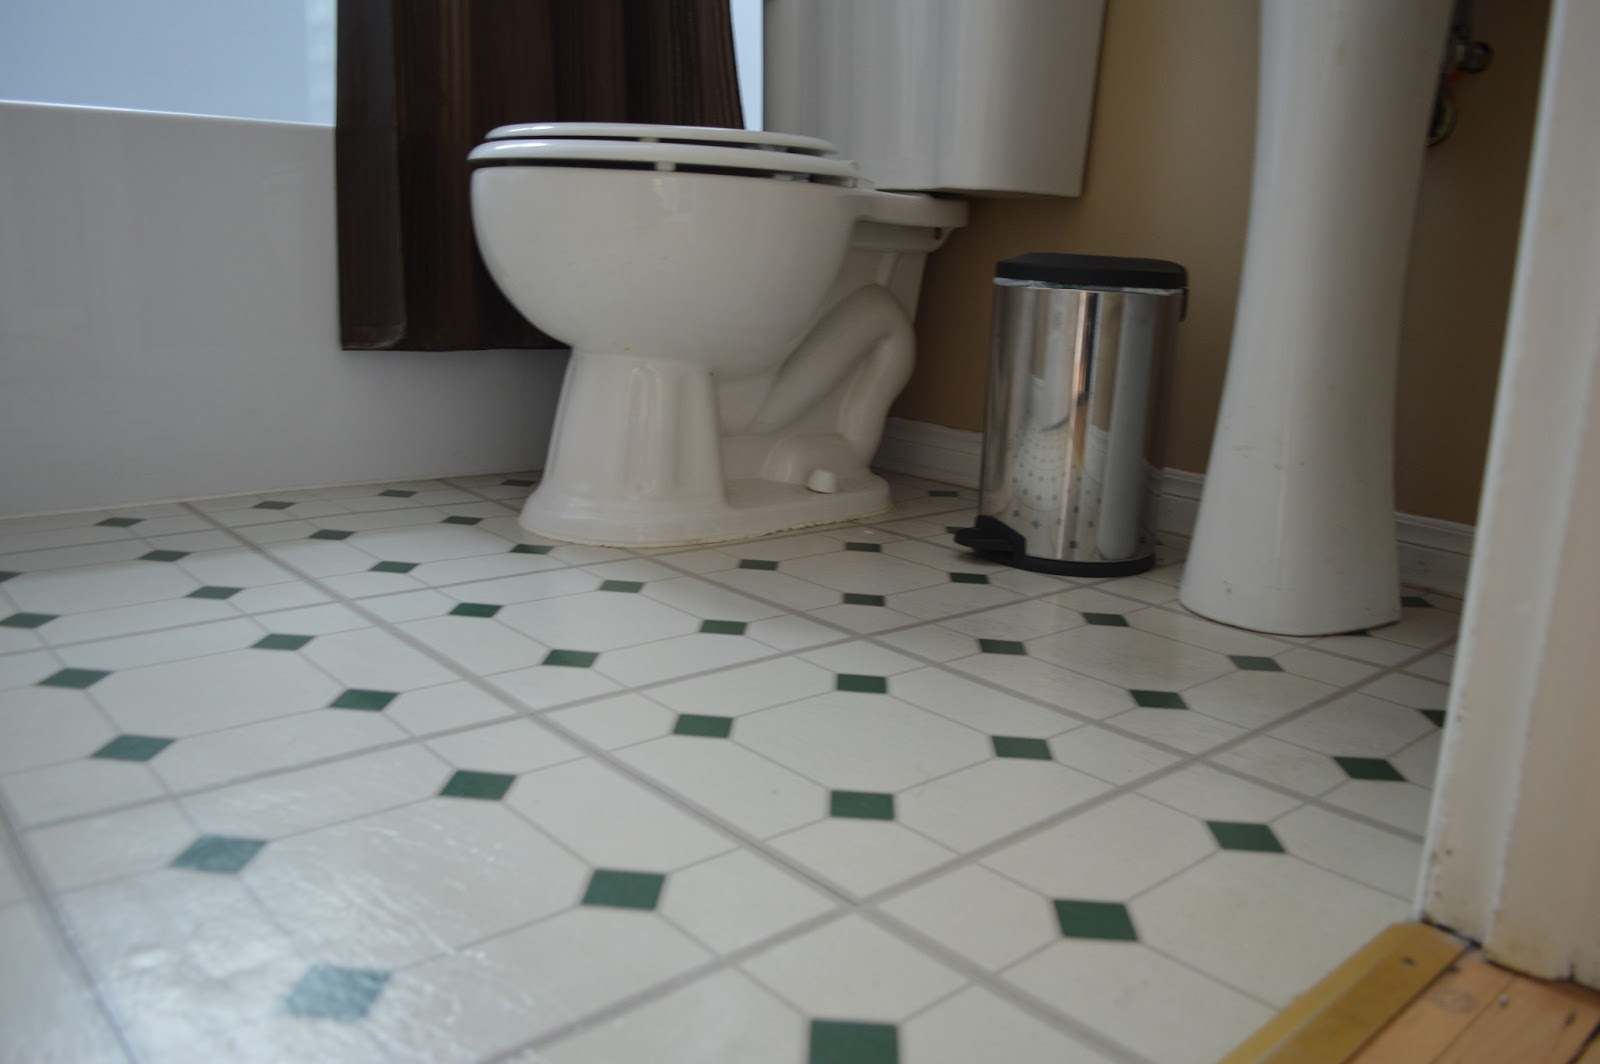 Bathroom Grout This Kind Handyman And I When Your Tile Grout Turns White This